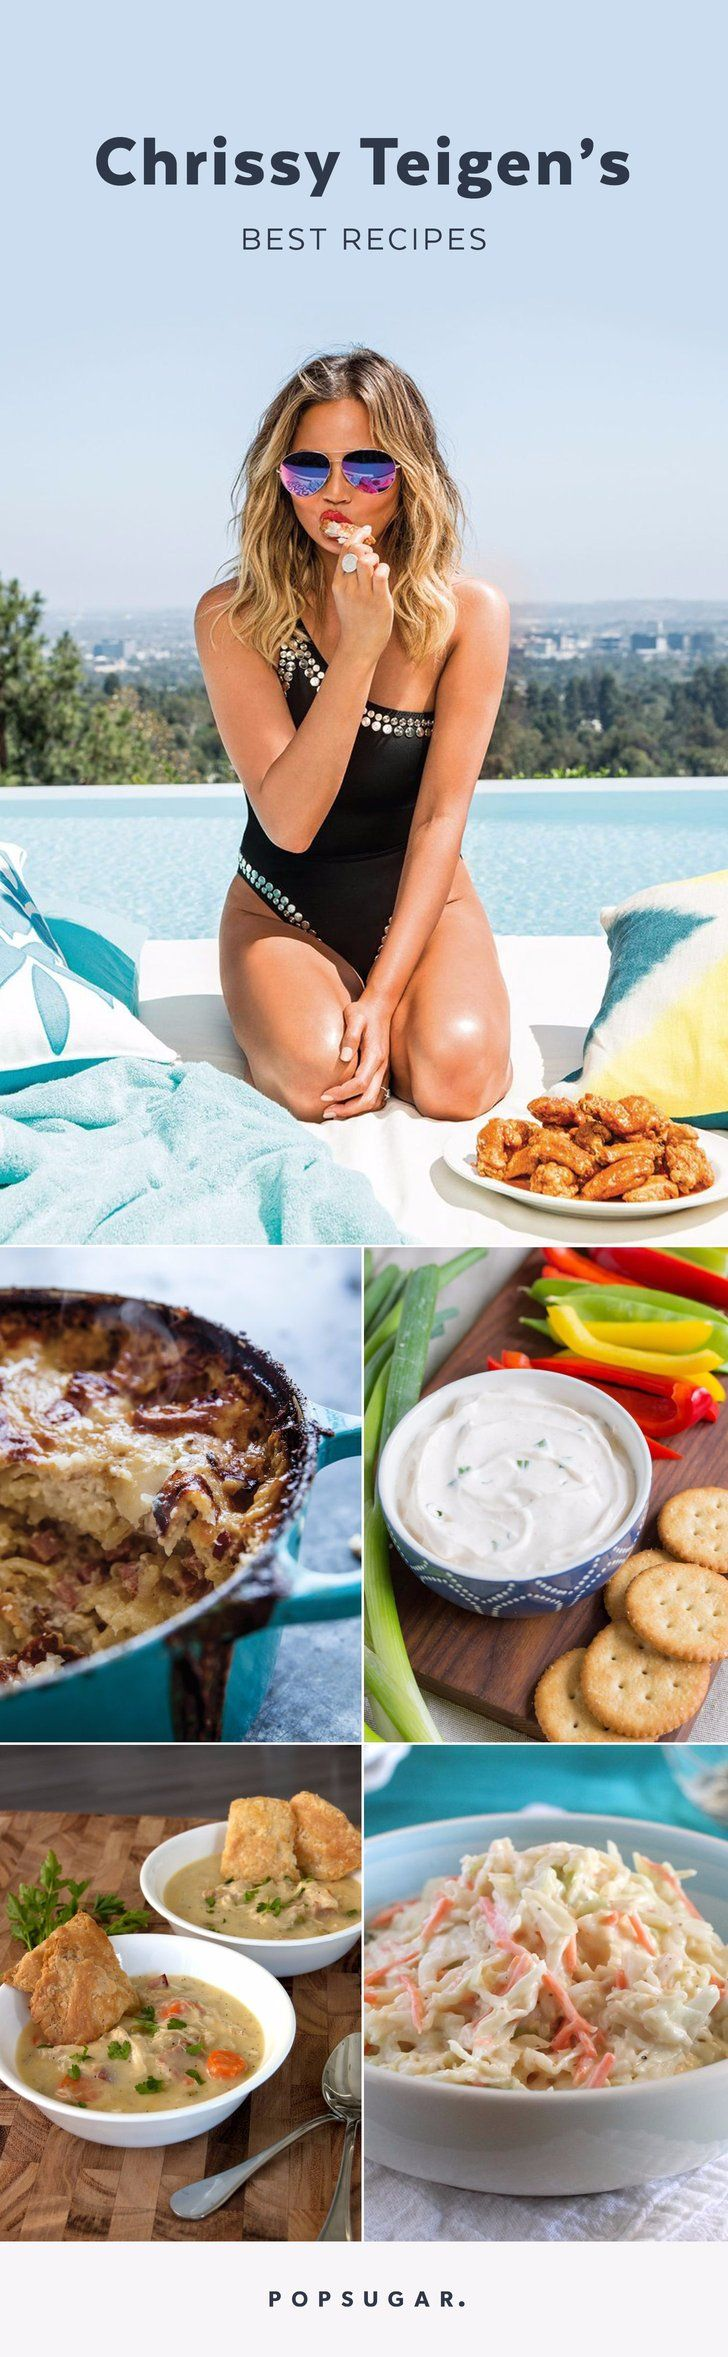 16 Recipes From Chrissy Teigen That Will Transform the Way You Cook